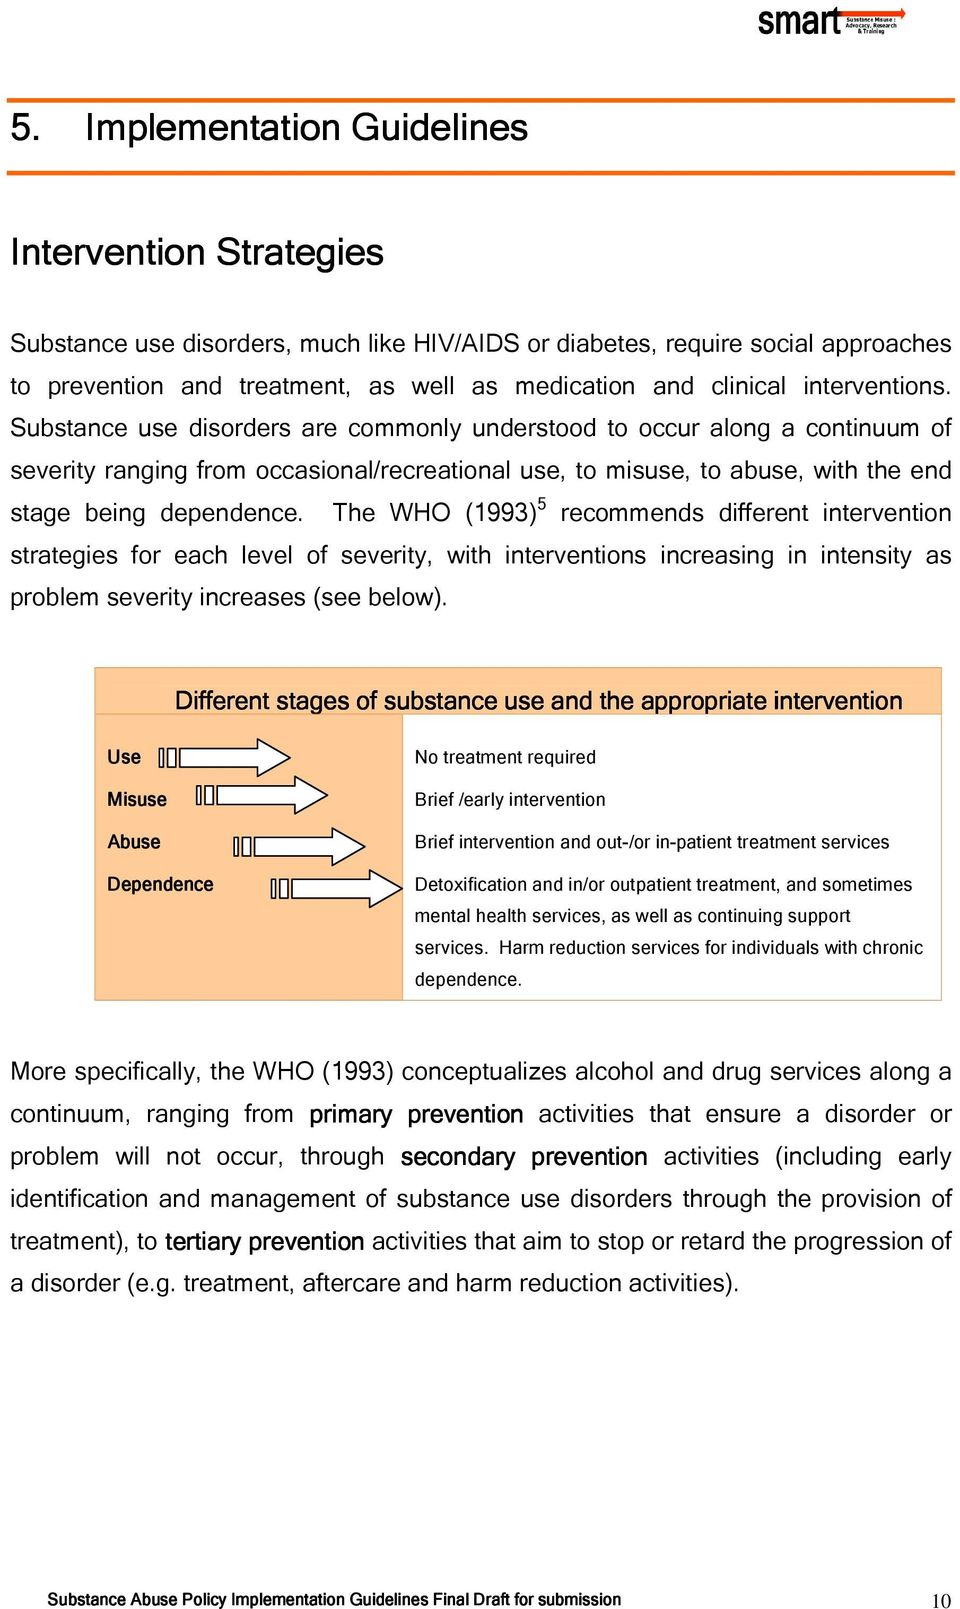 Substance use disorders are commonly understood to occur along a continuum of severity ranging from occasional/recreational use, to misuse, to abuse, with the end stage being dependence.